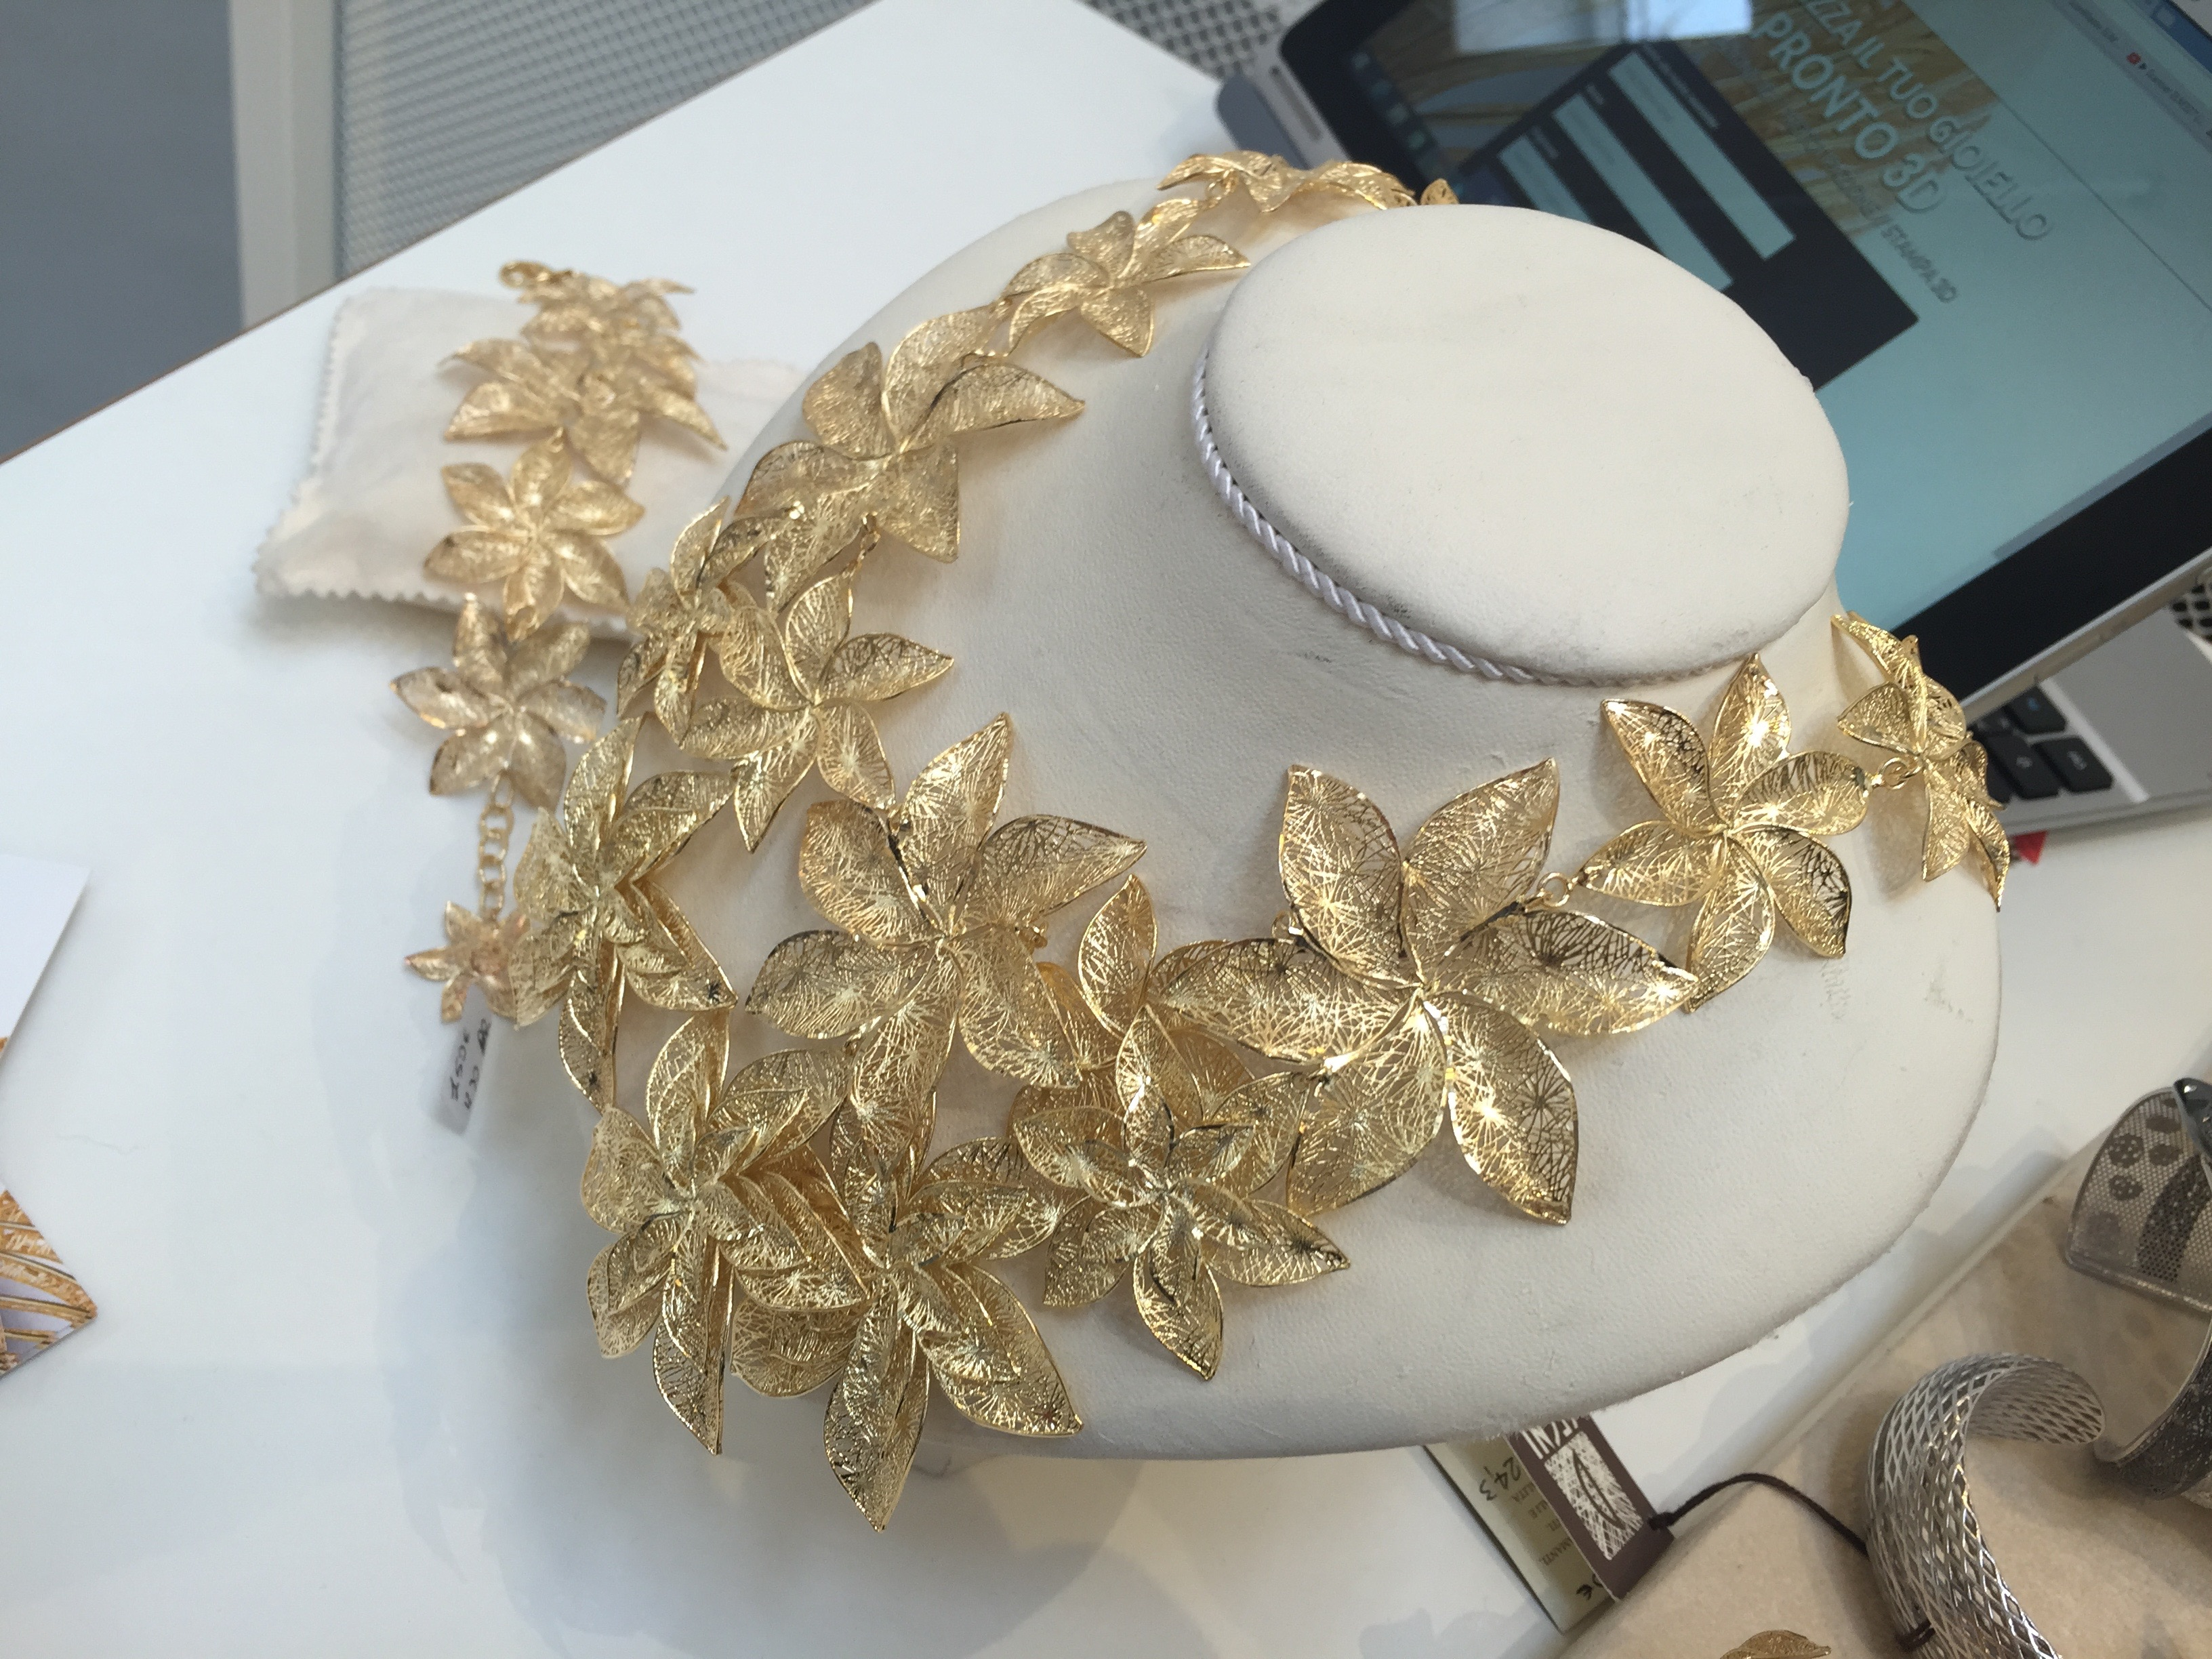 Pronto3D Jewelry 3D Printing Services - 3D Printing Industry